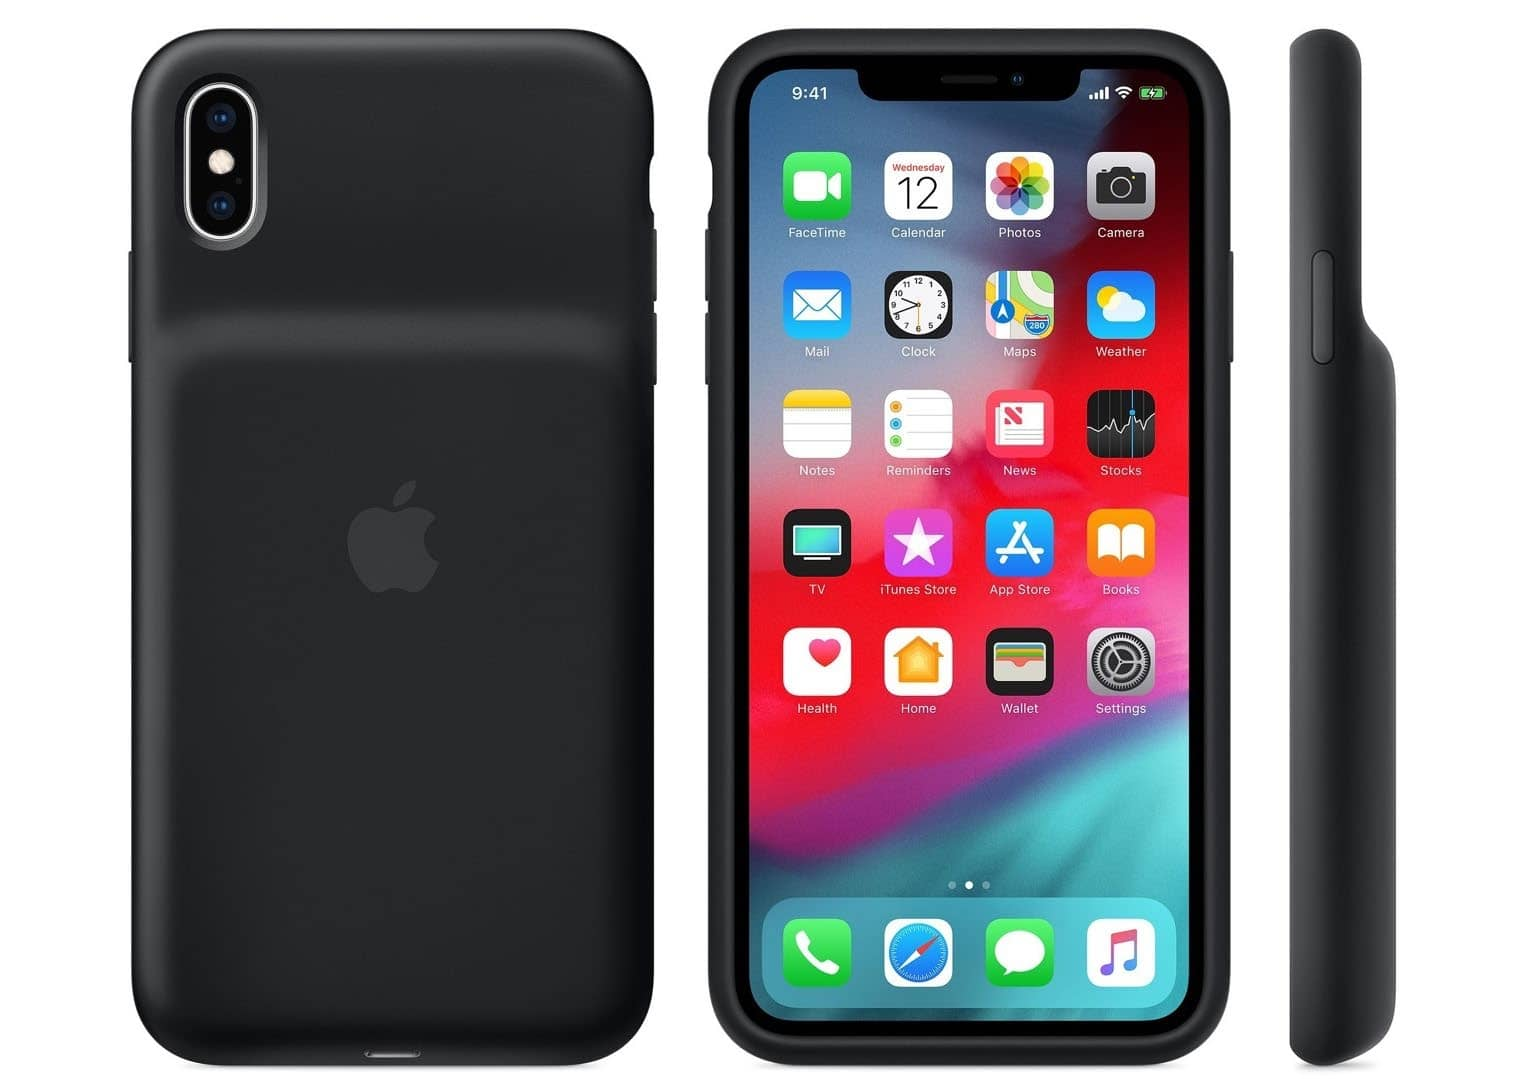 The New iPhone XS Battery Case Works With The iPhone X, But Don't Expect Perfection